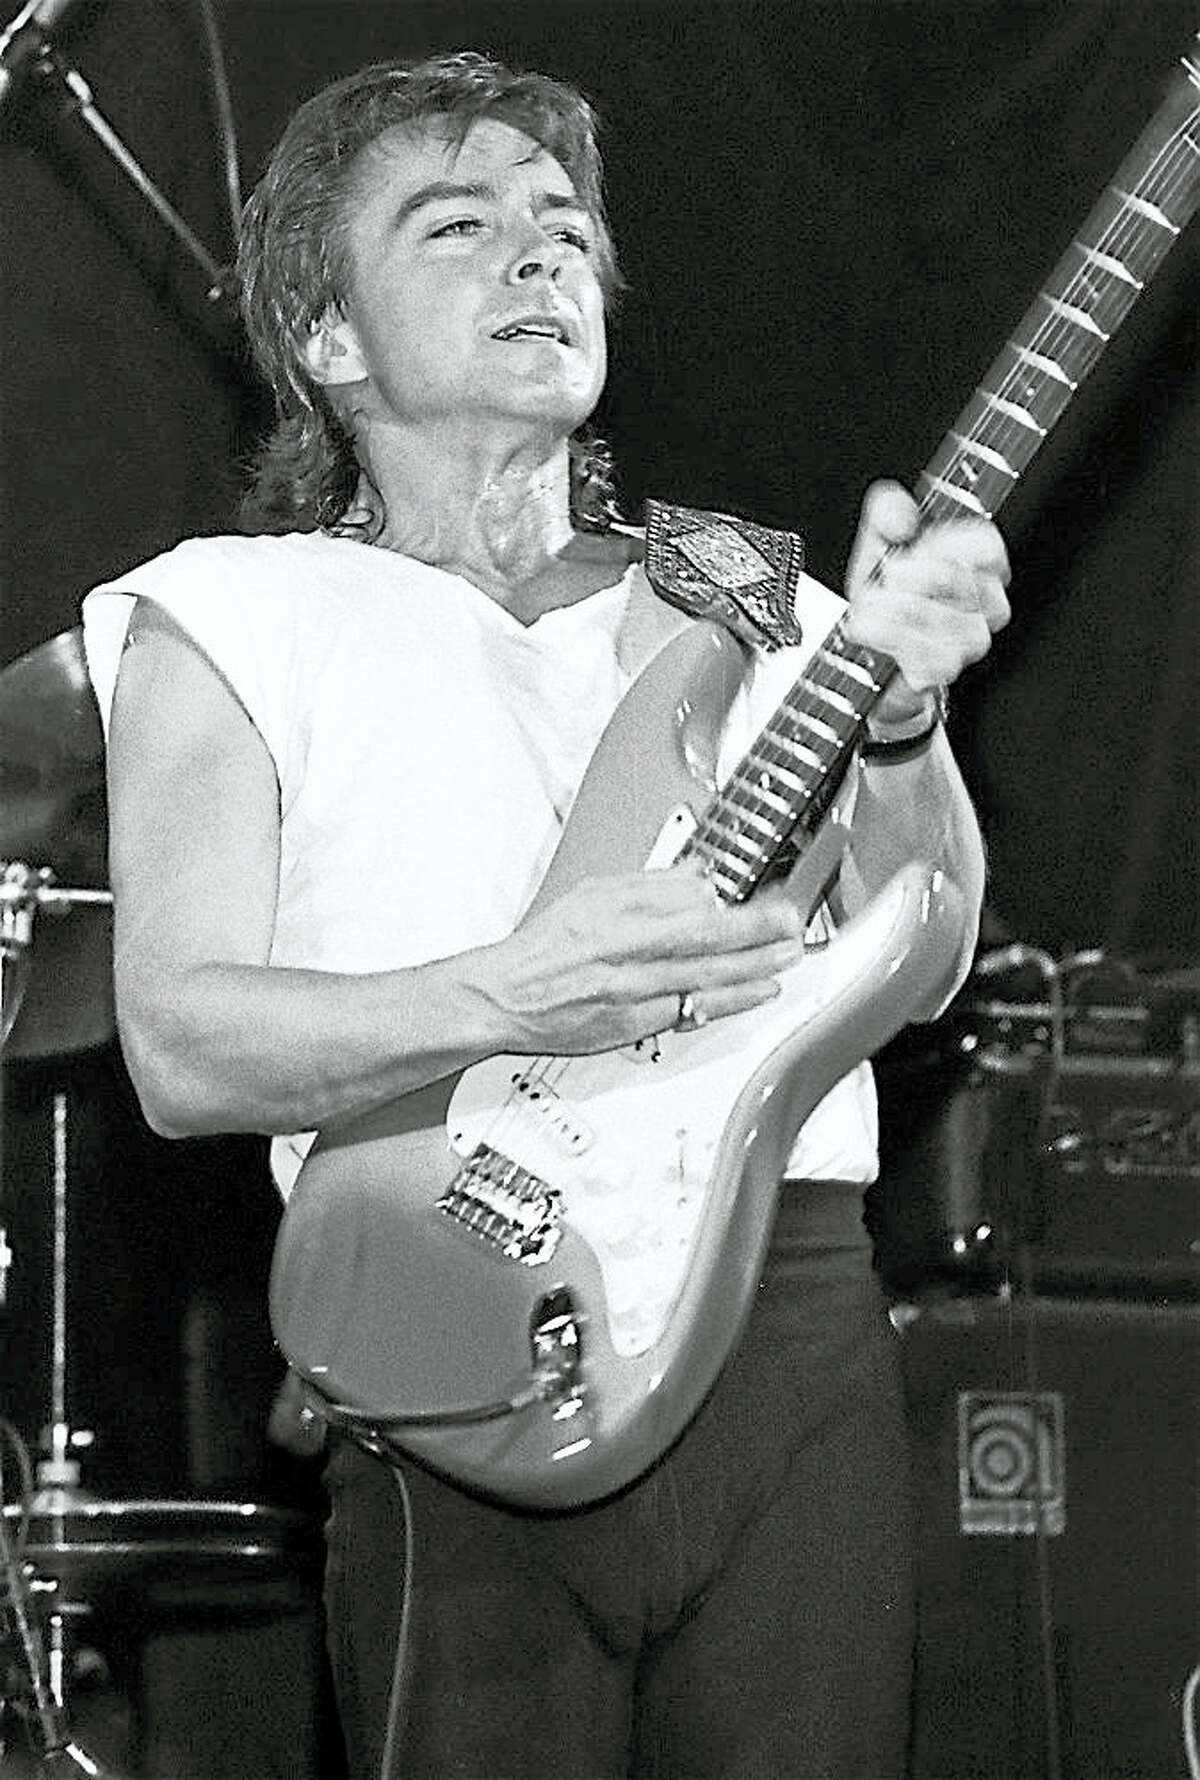 Photo by John Atashian Actor and musician David Cassidy is set to perform an intimate concert at the Infinity Music Hall in Hartford on Saturday June 11.